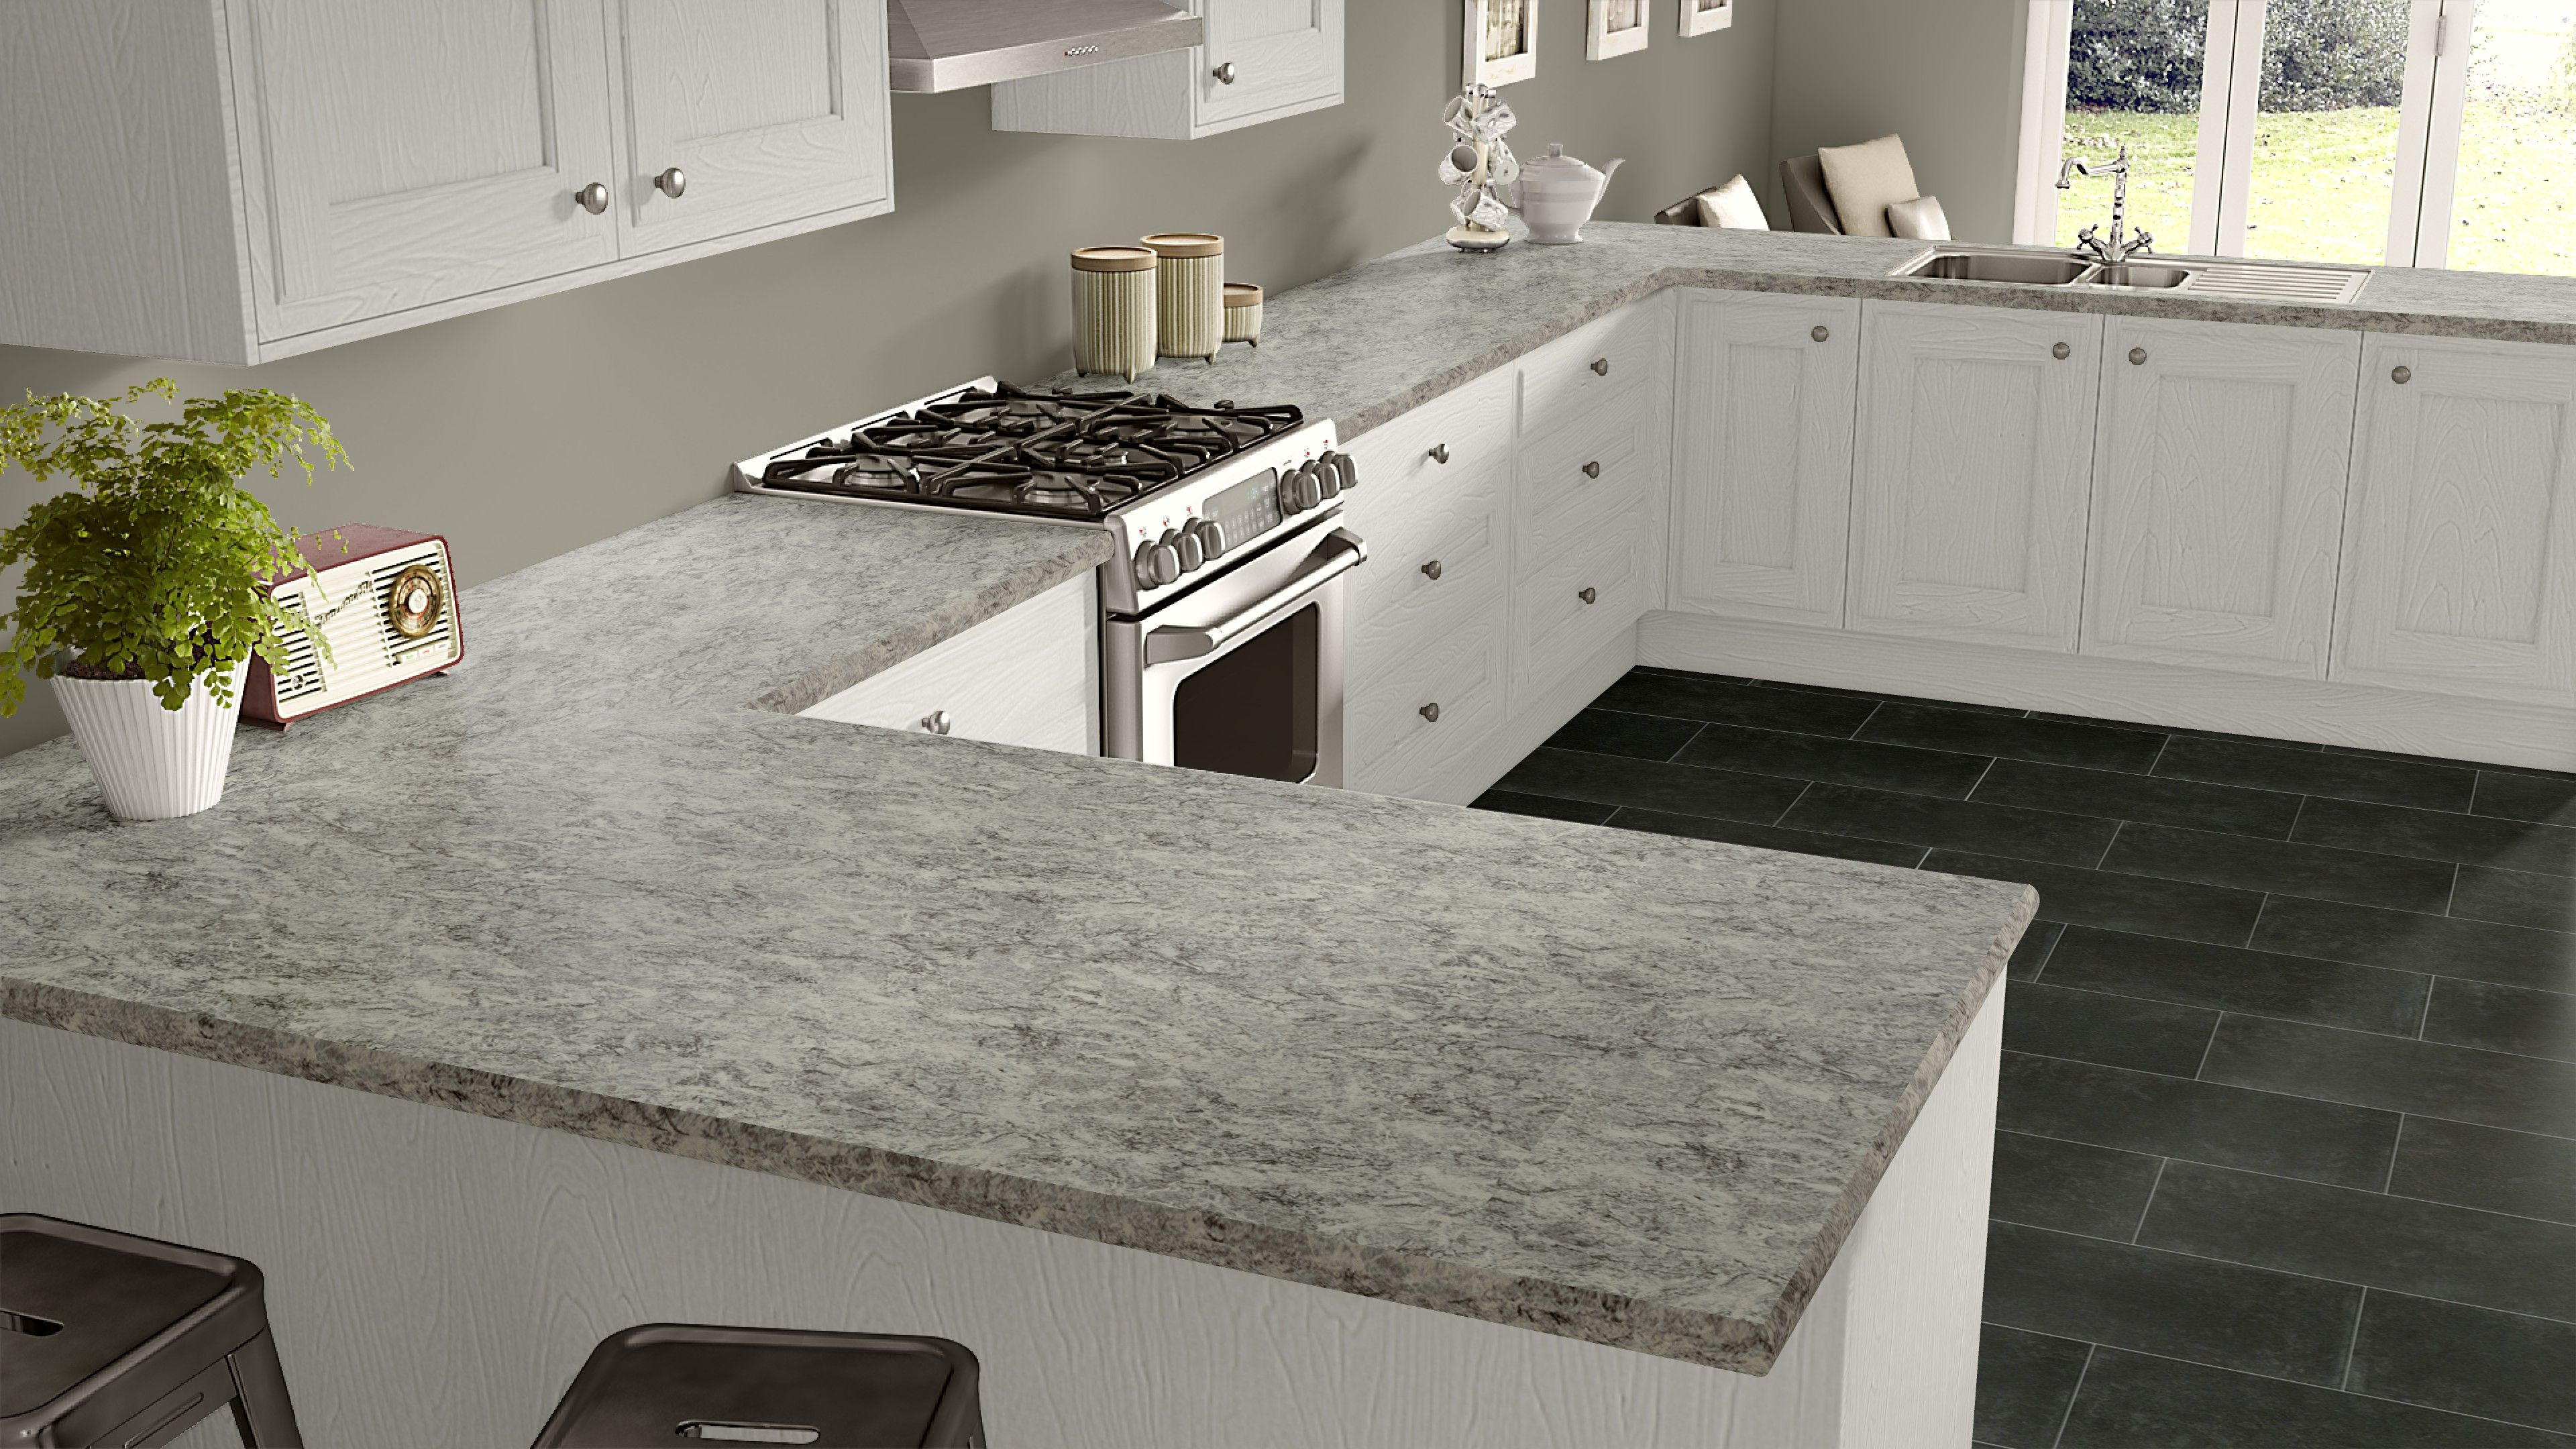 Get Inspired For Your Kitchen Renovation With Wilsonart S Free Visualizer Kitchen Renovation Room Visualizer Wilsonart